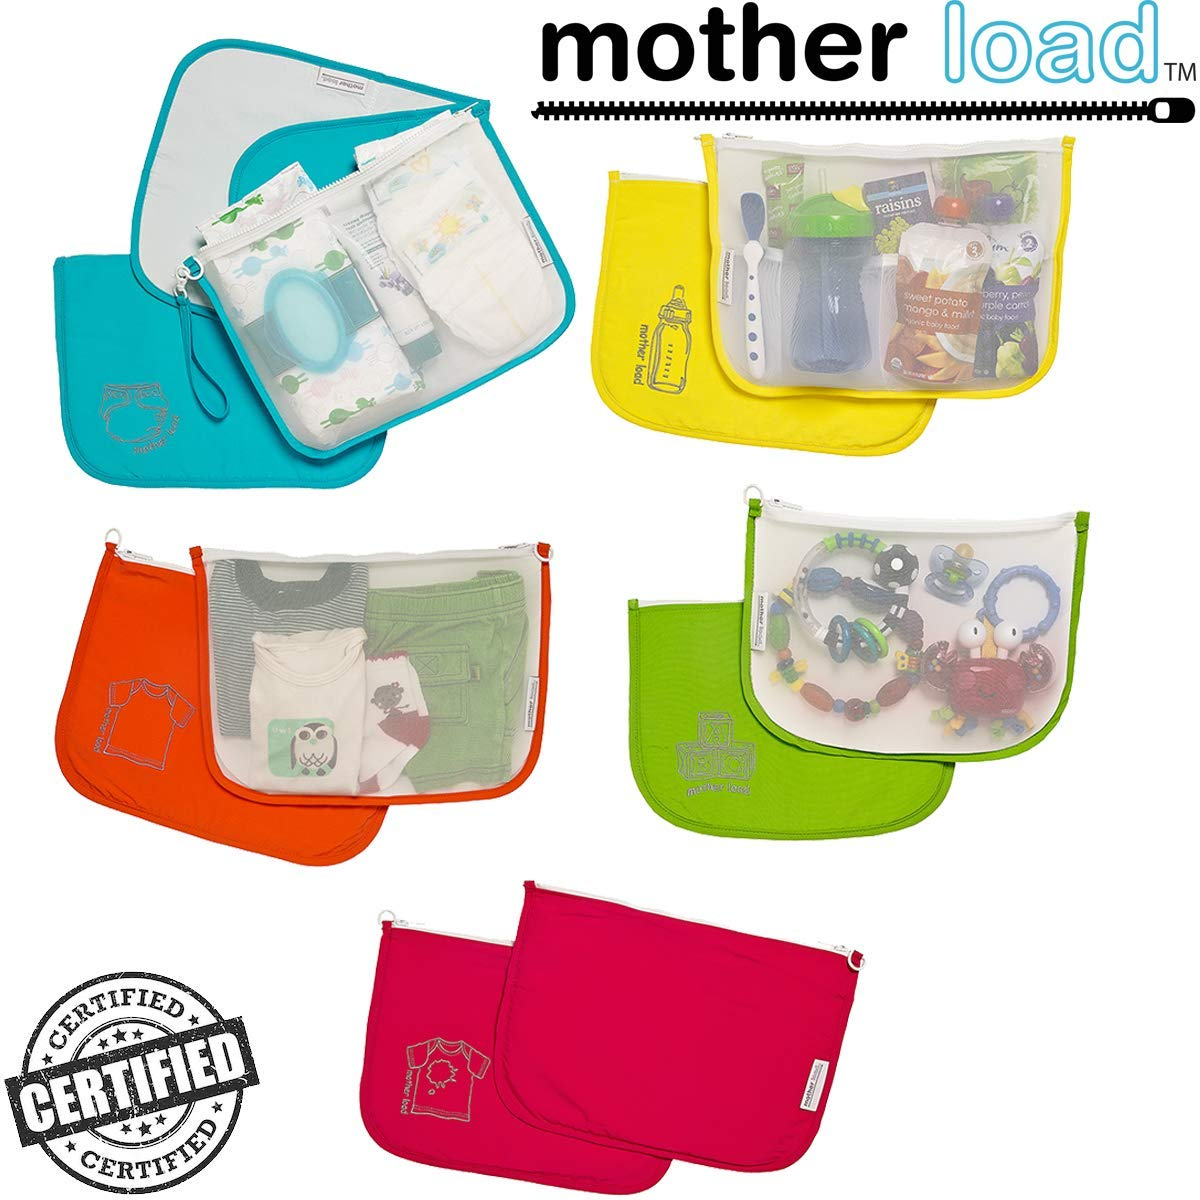 Diaper Bag Organizer Pouches by MOTHER LOAD - Designed for The On-The-Go Family (Mom & Dad's), Organize Any Traditional Diaper Bag, Purse or Backpack with This 5 Piece Set from Mother Load by Mother Load